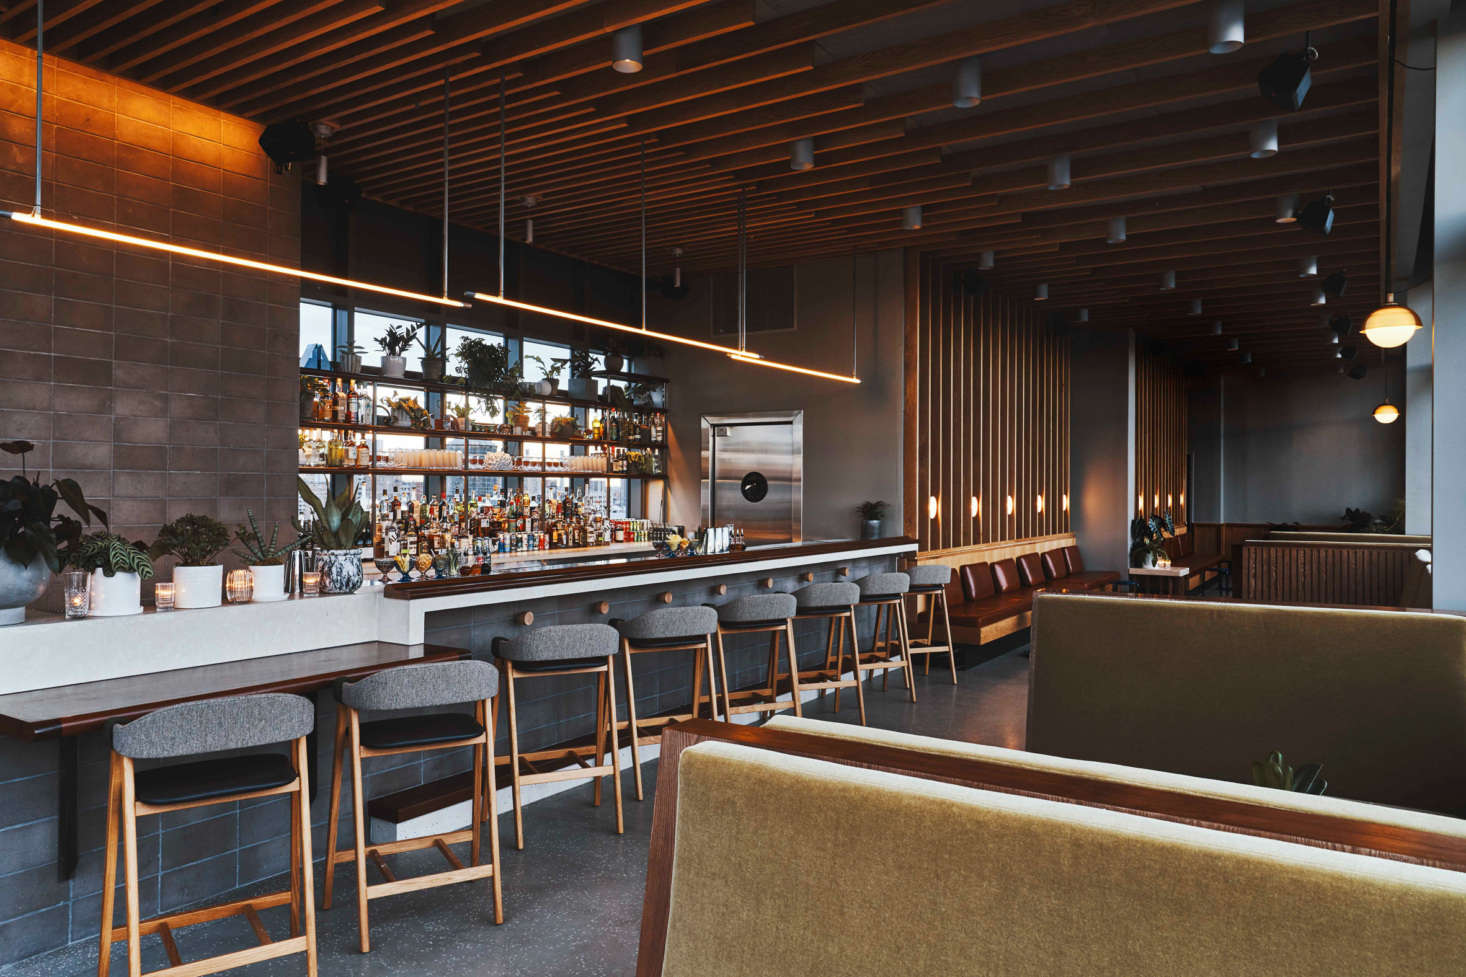 The 11th-floor bar, called Last Light, has views of the city and two outdoor decks.